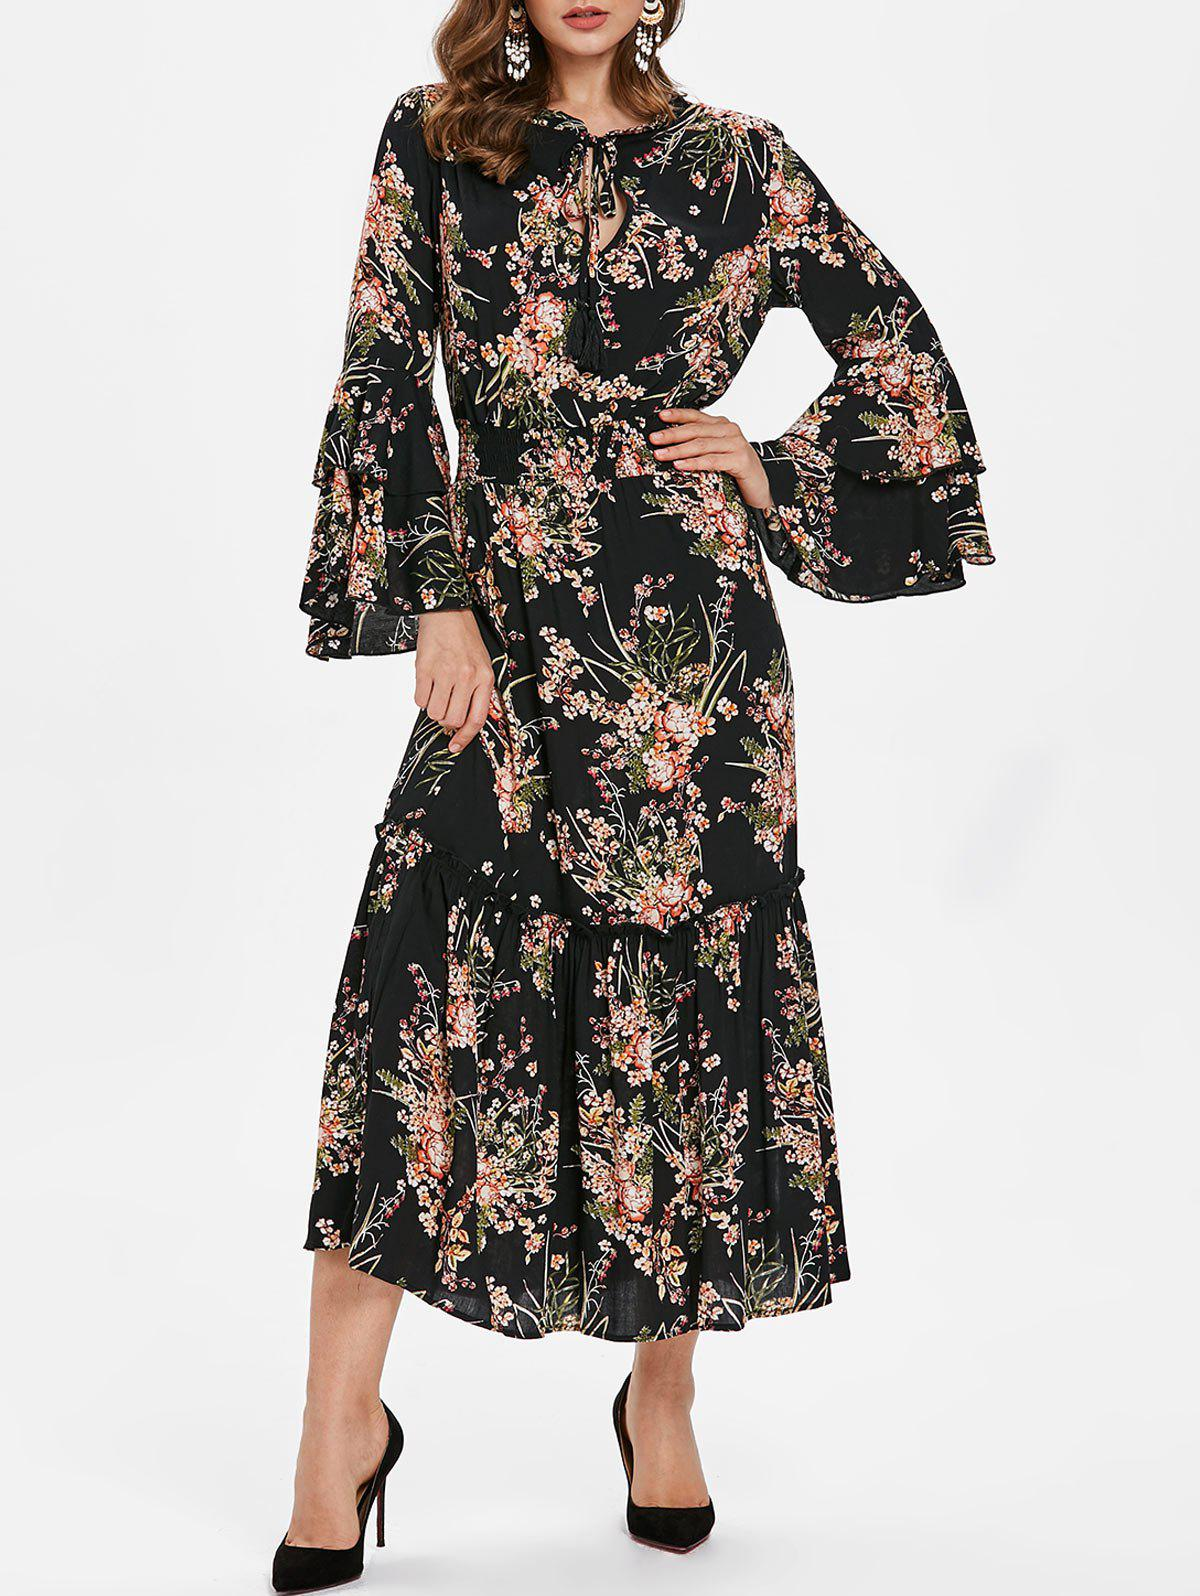 Flare Sleeve Tiny Floral Print Long Dress - BLACK M